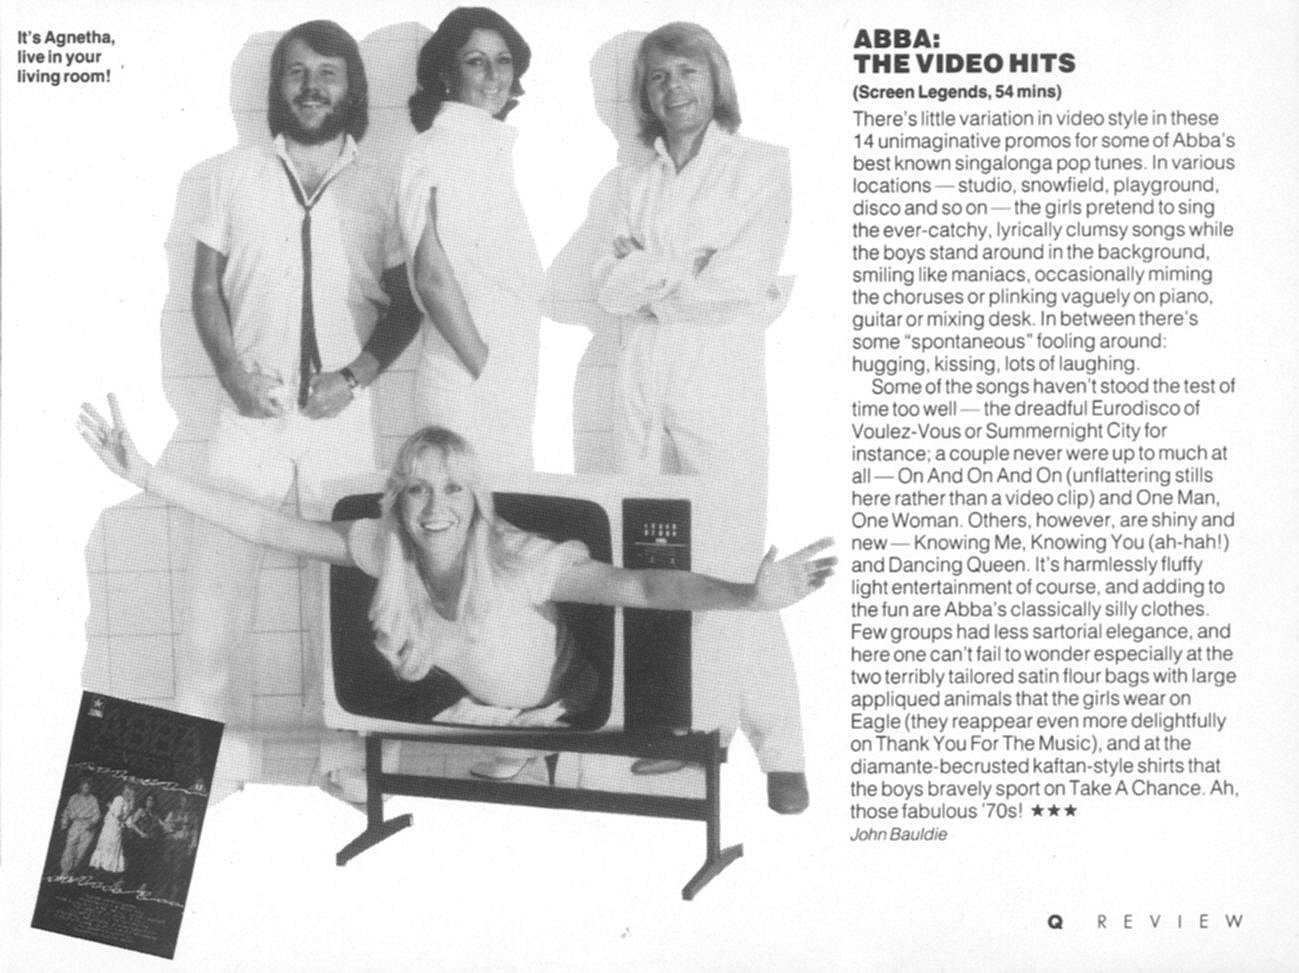 abba the video hits q mag review